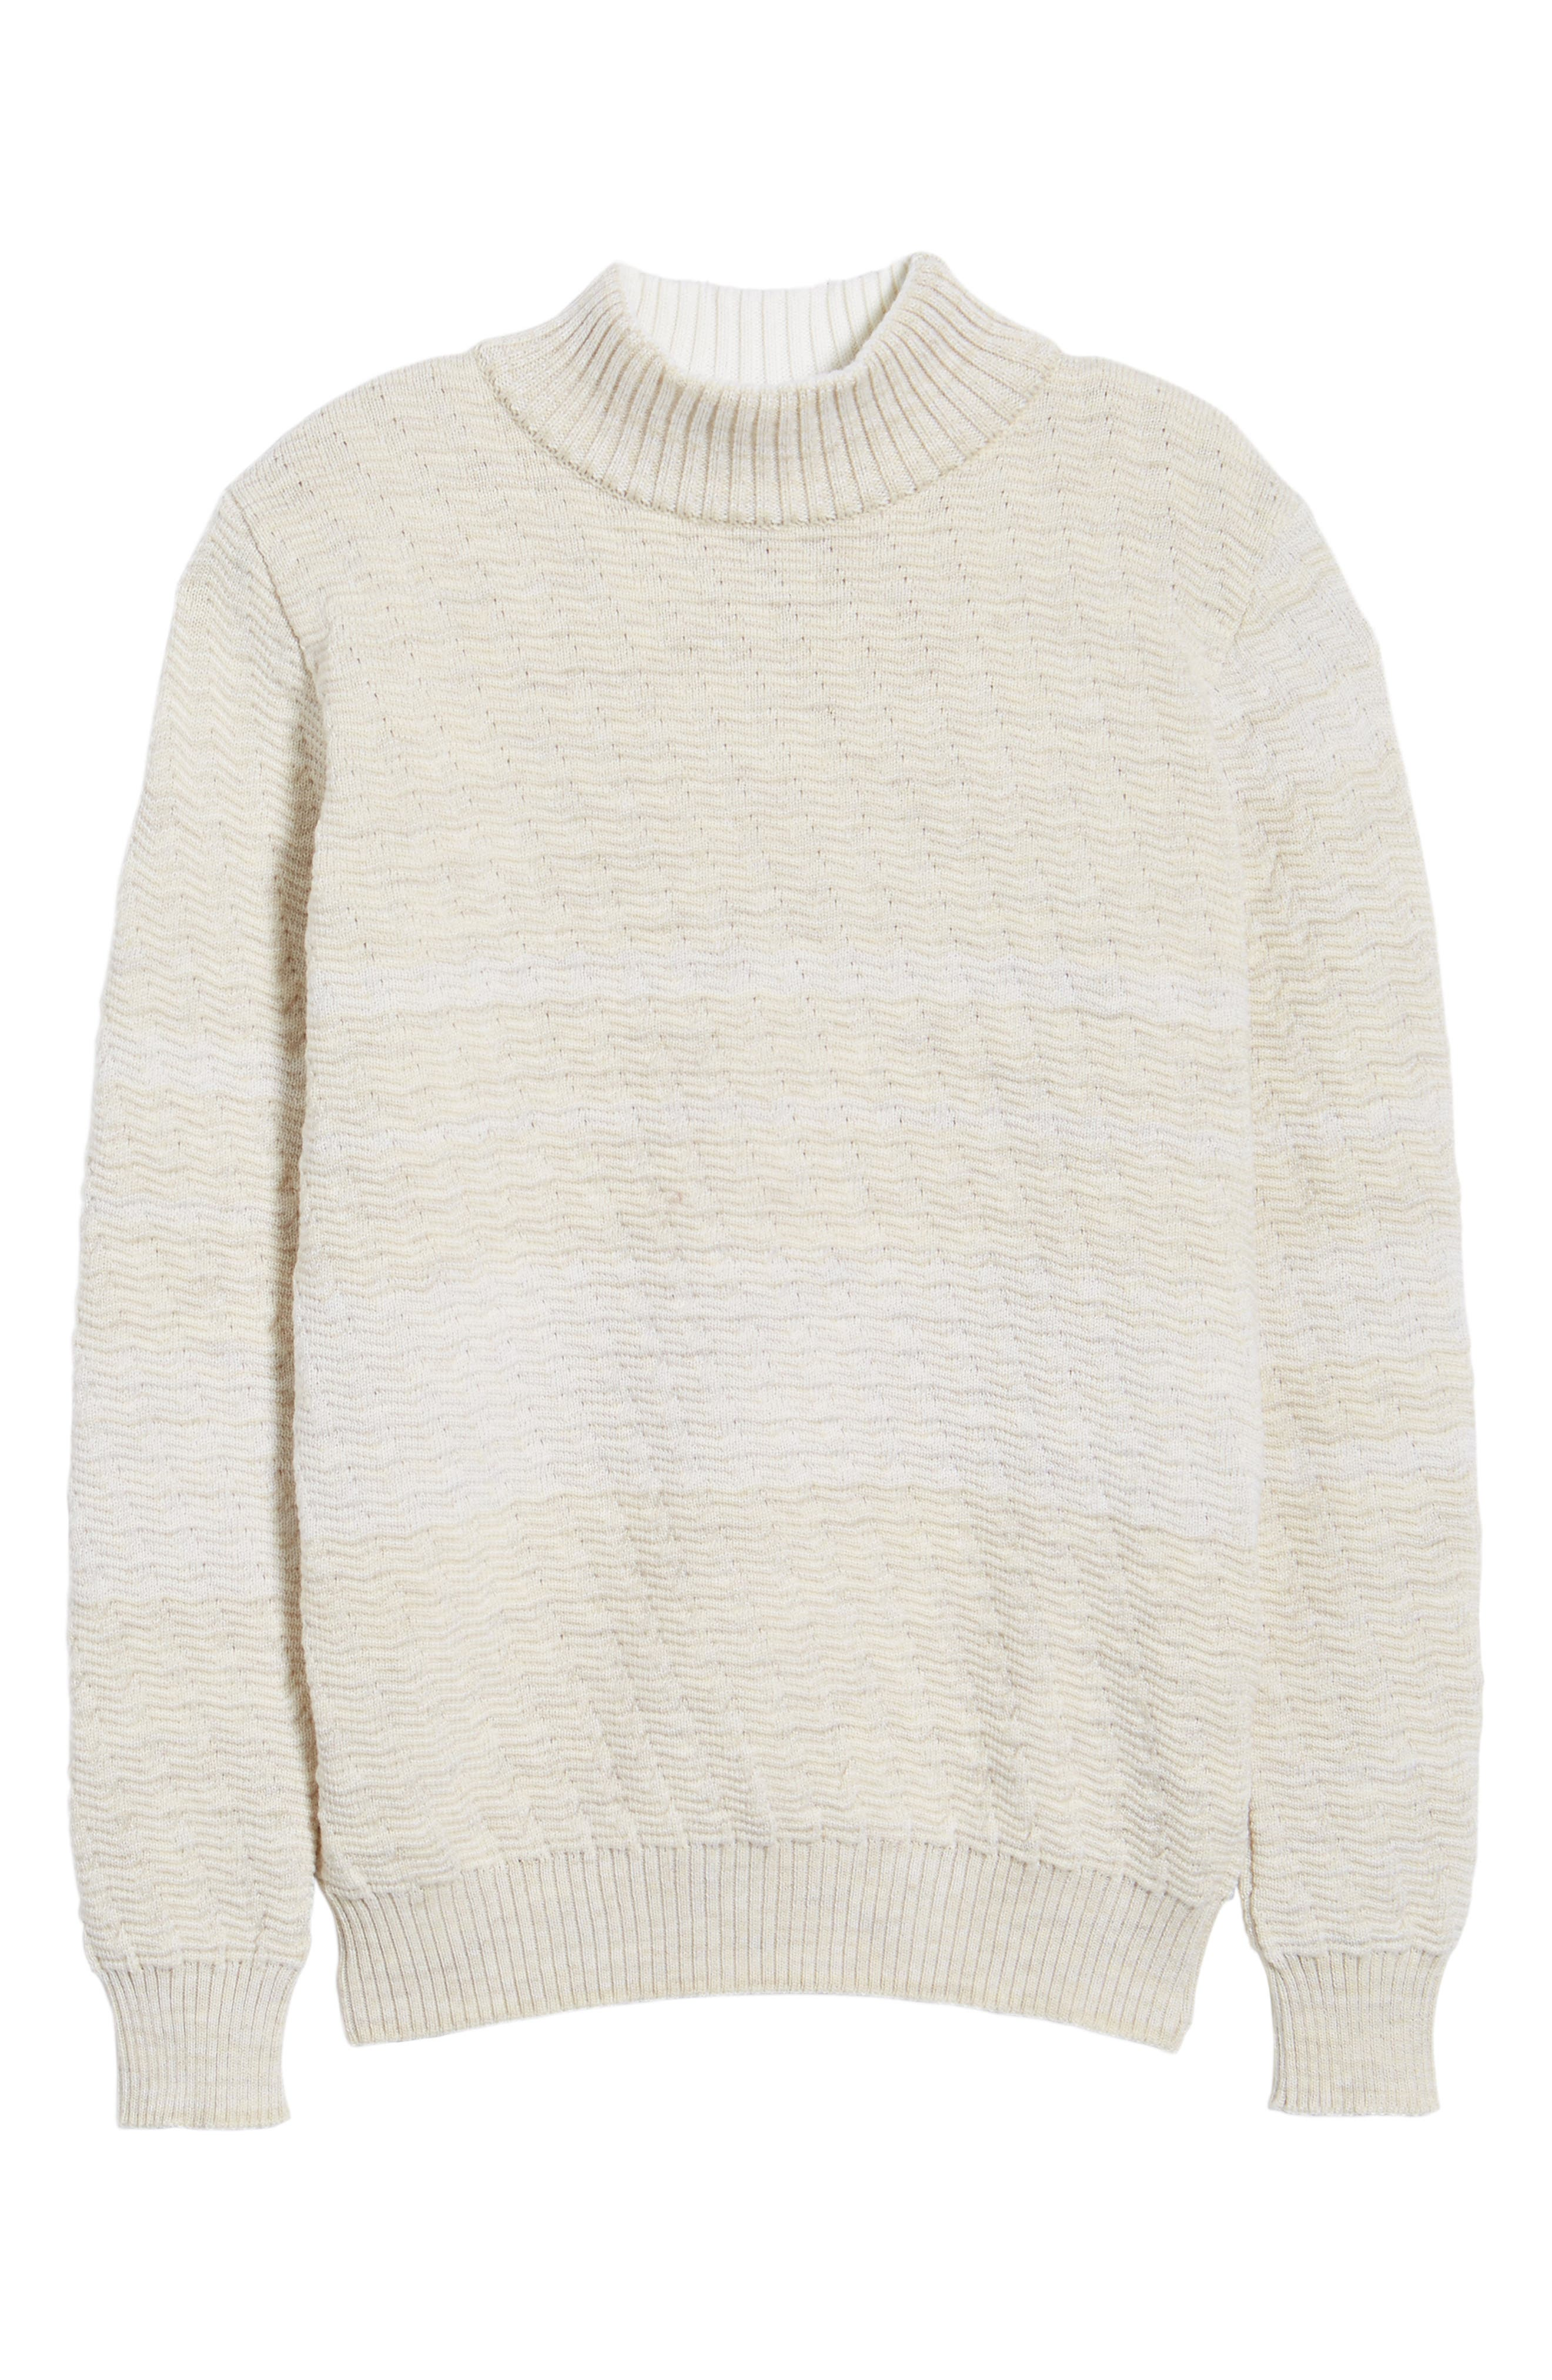 Evident Wool Turtleneck Sweater,                             Alternate thumbnail 6, color,                             250